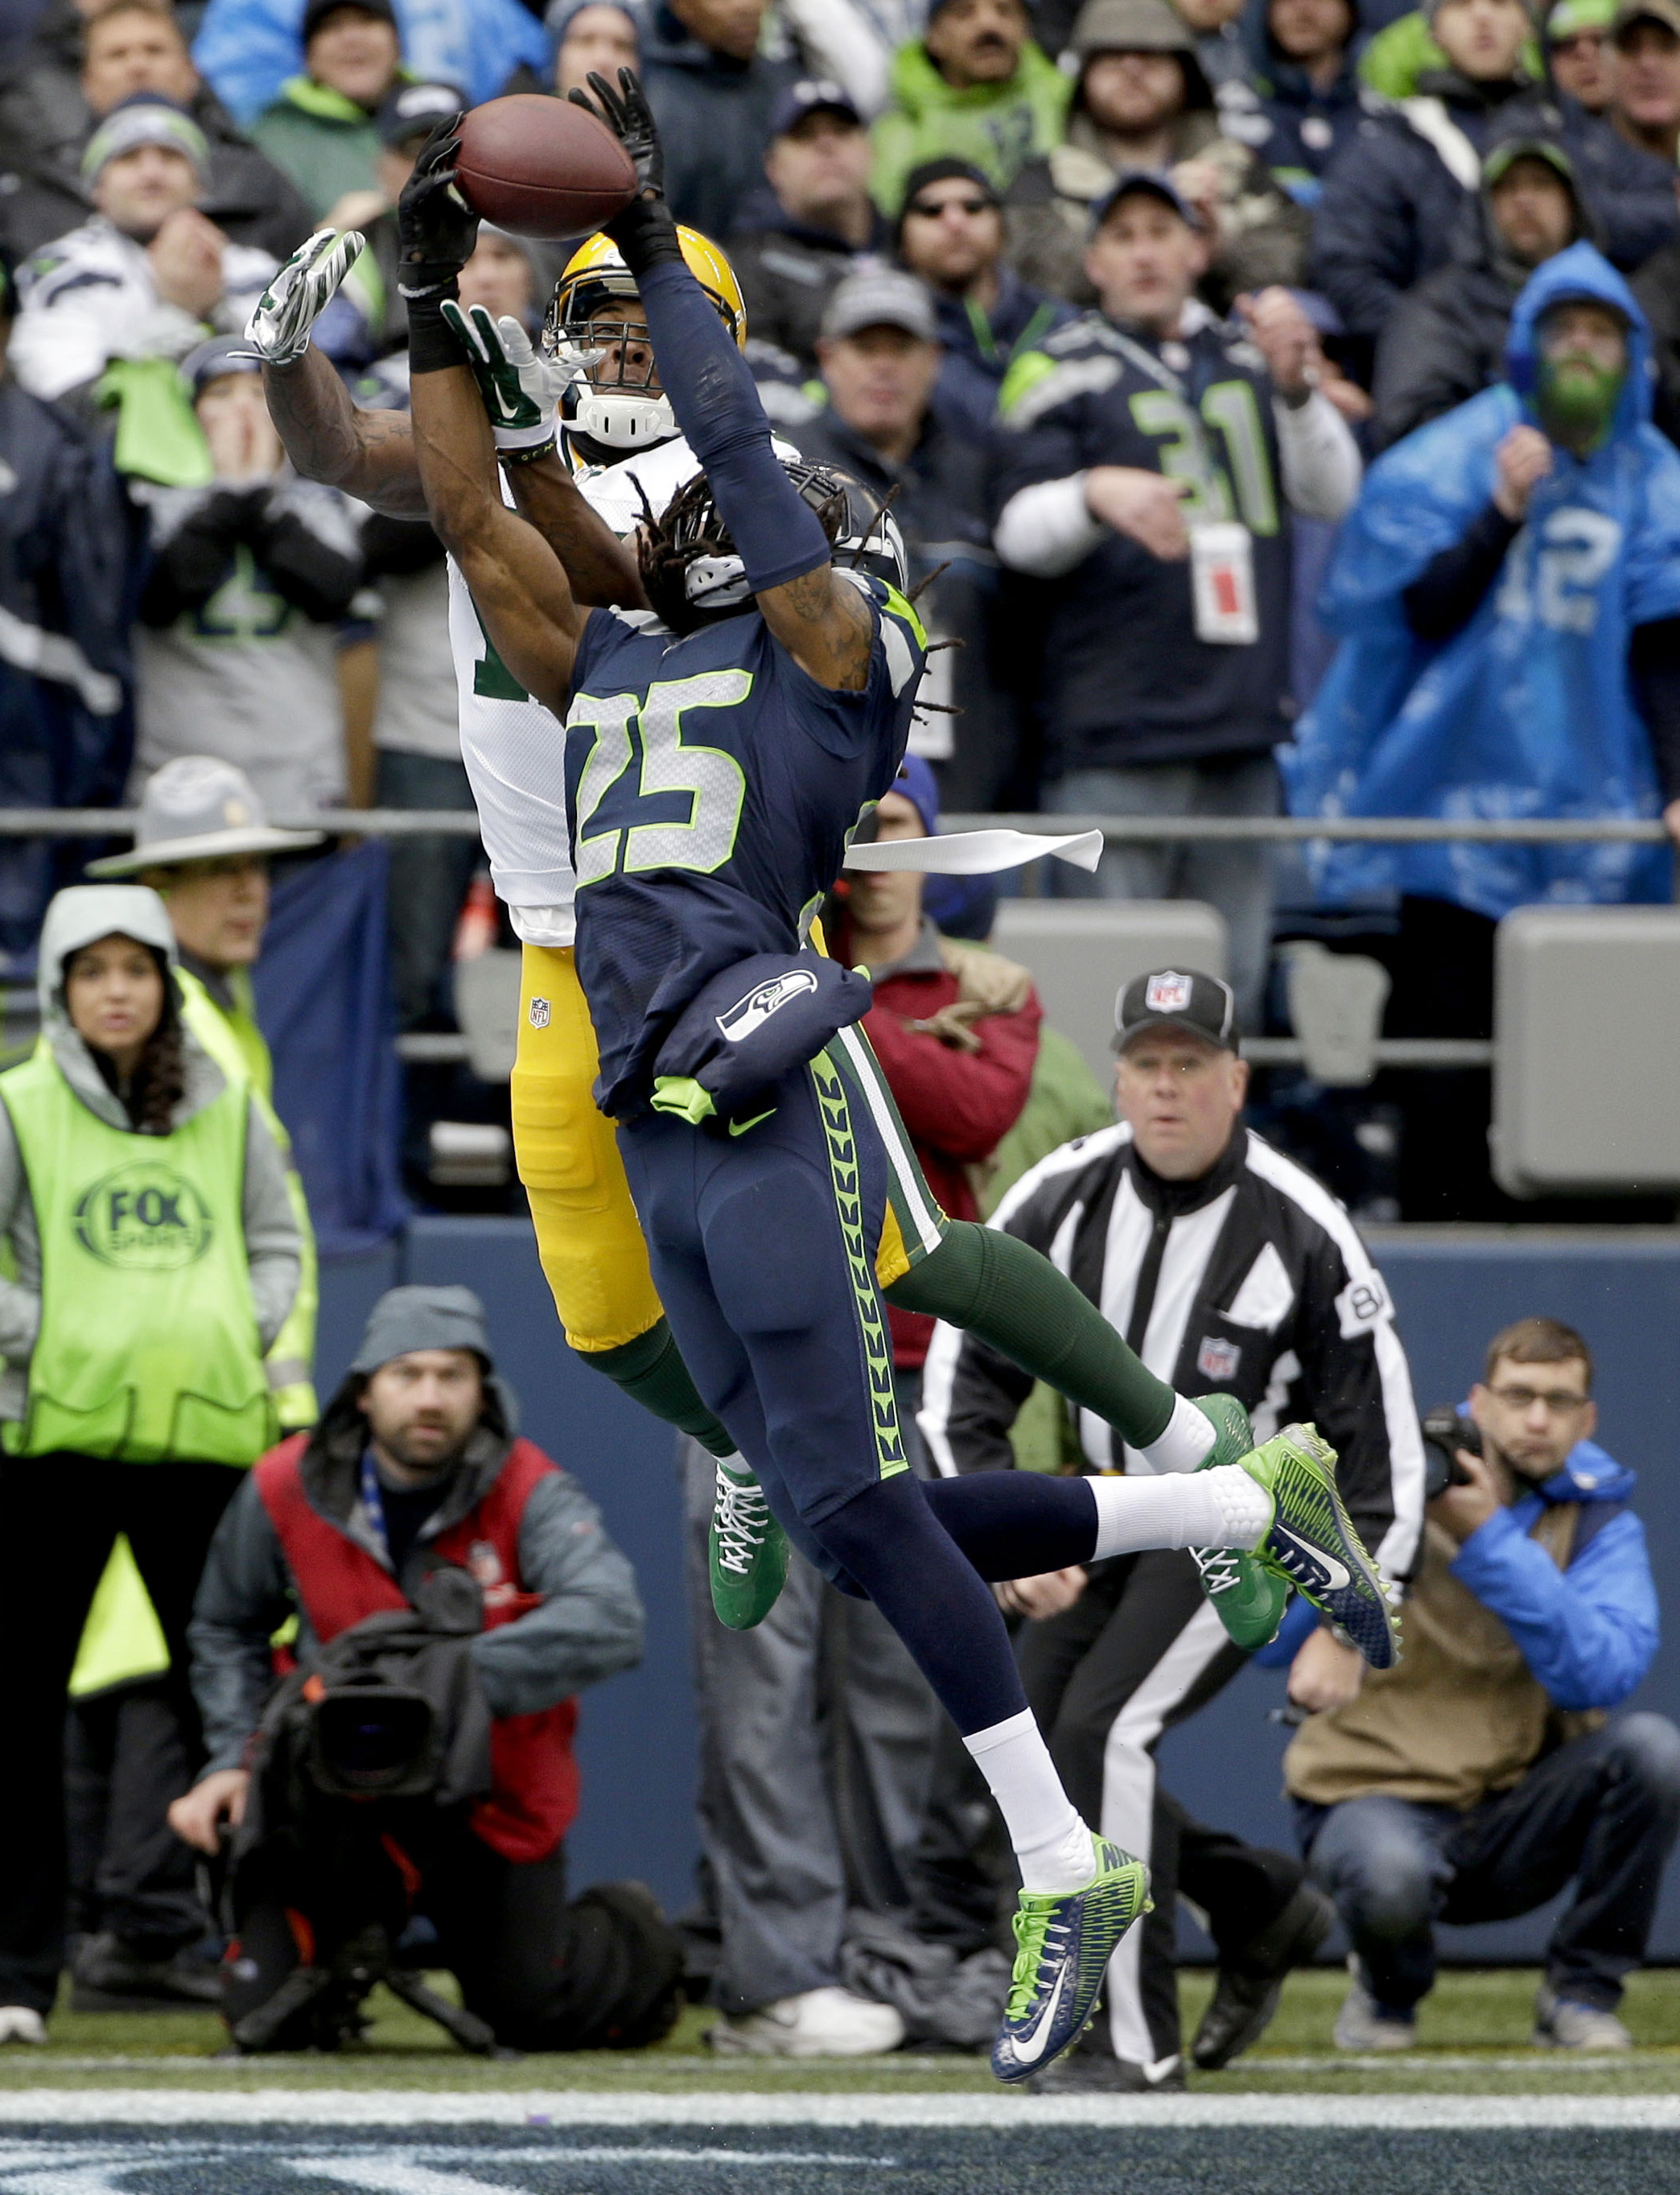 FILE - In this Jan. 18, 2015, file photo, Seattle Seahawks cornerback Richard Sherman (25) intercepts a pass intended for Green Bay Packers wide receiver Davante Adams (17) during the first half of the NFL football NFC Championship game in Seattle. The Pa